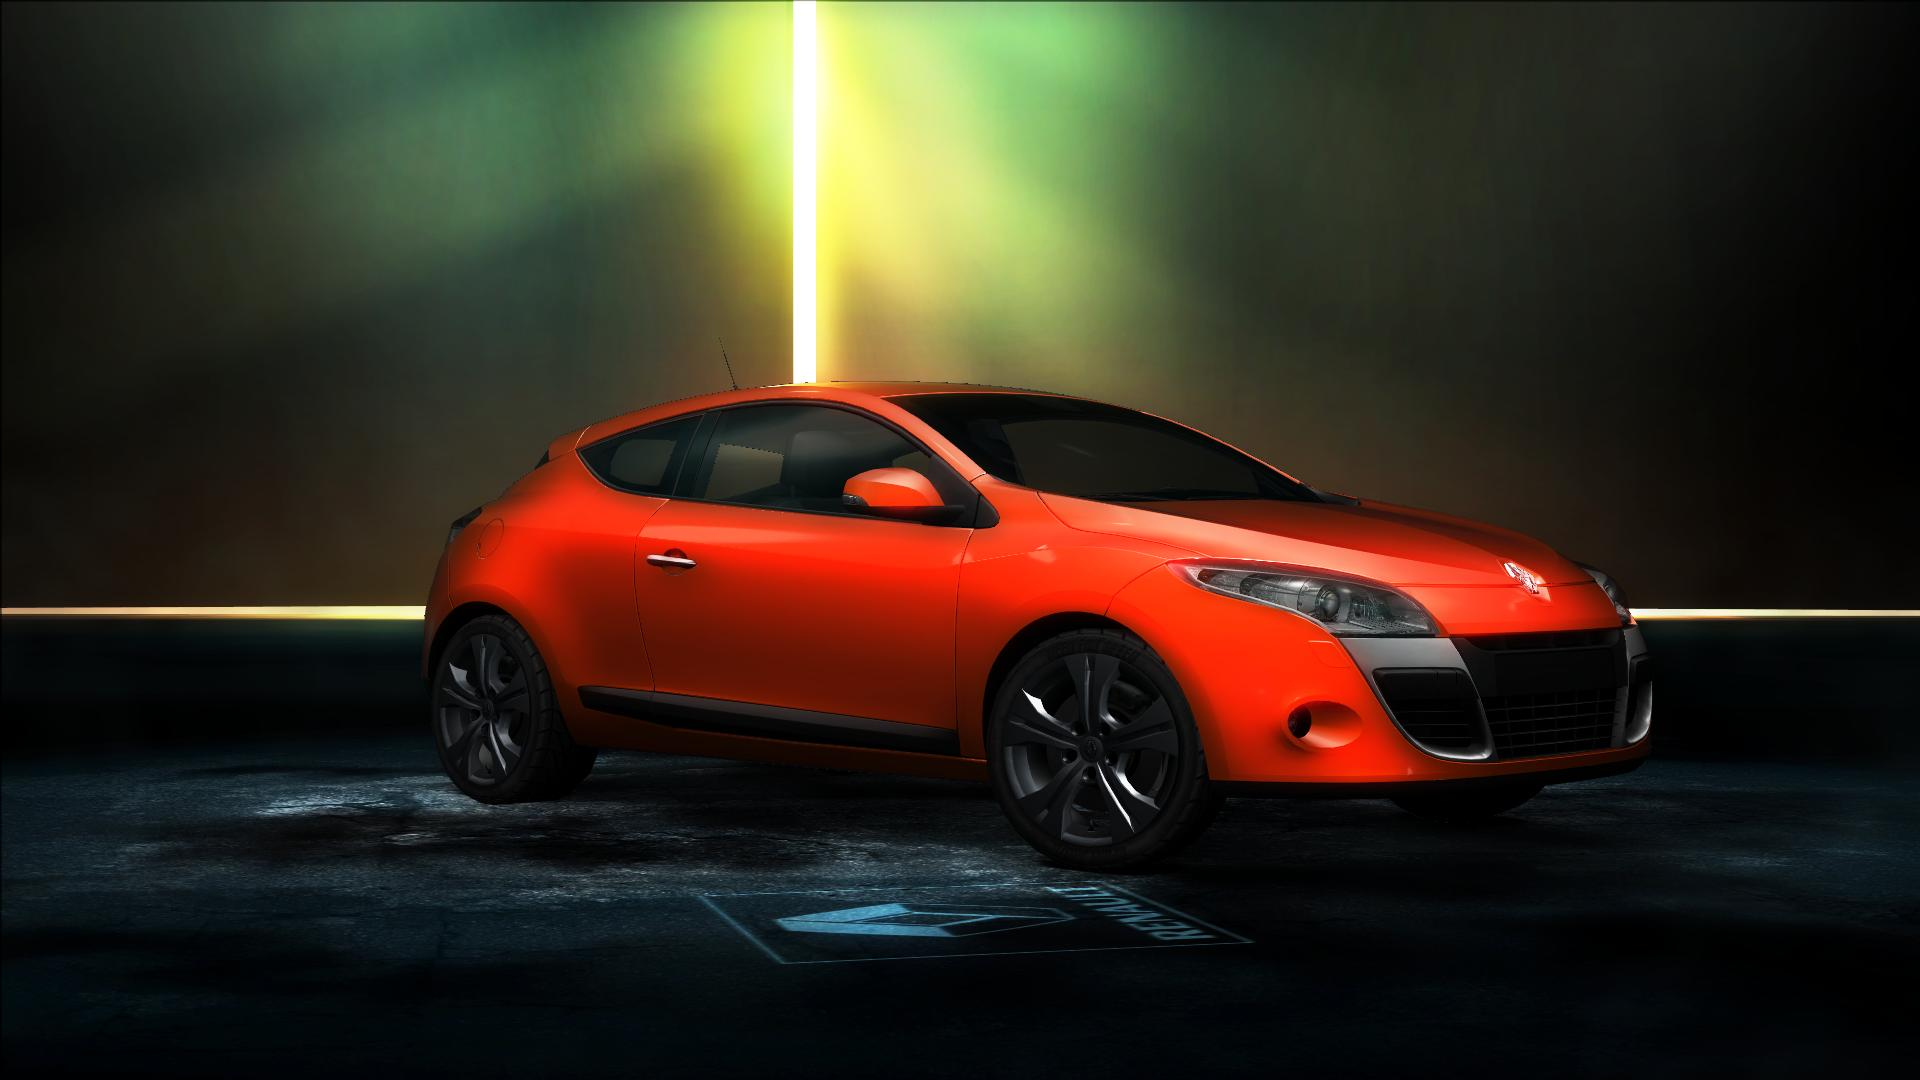 Renault Mégane Coupé | Need for Speed Wiki | FANDOM powered